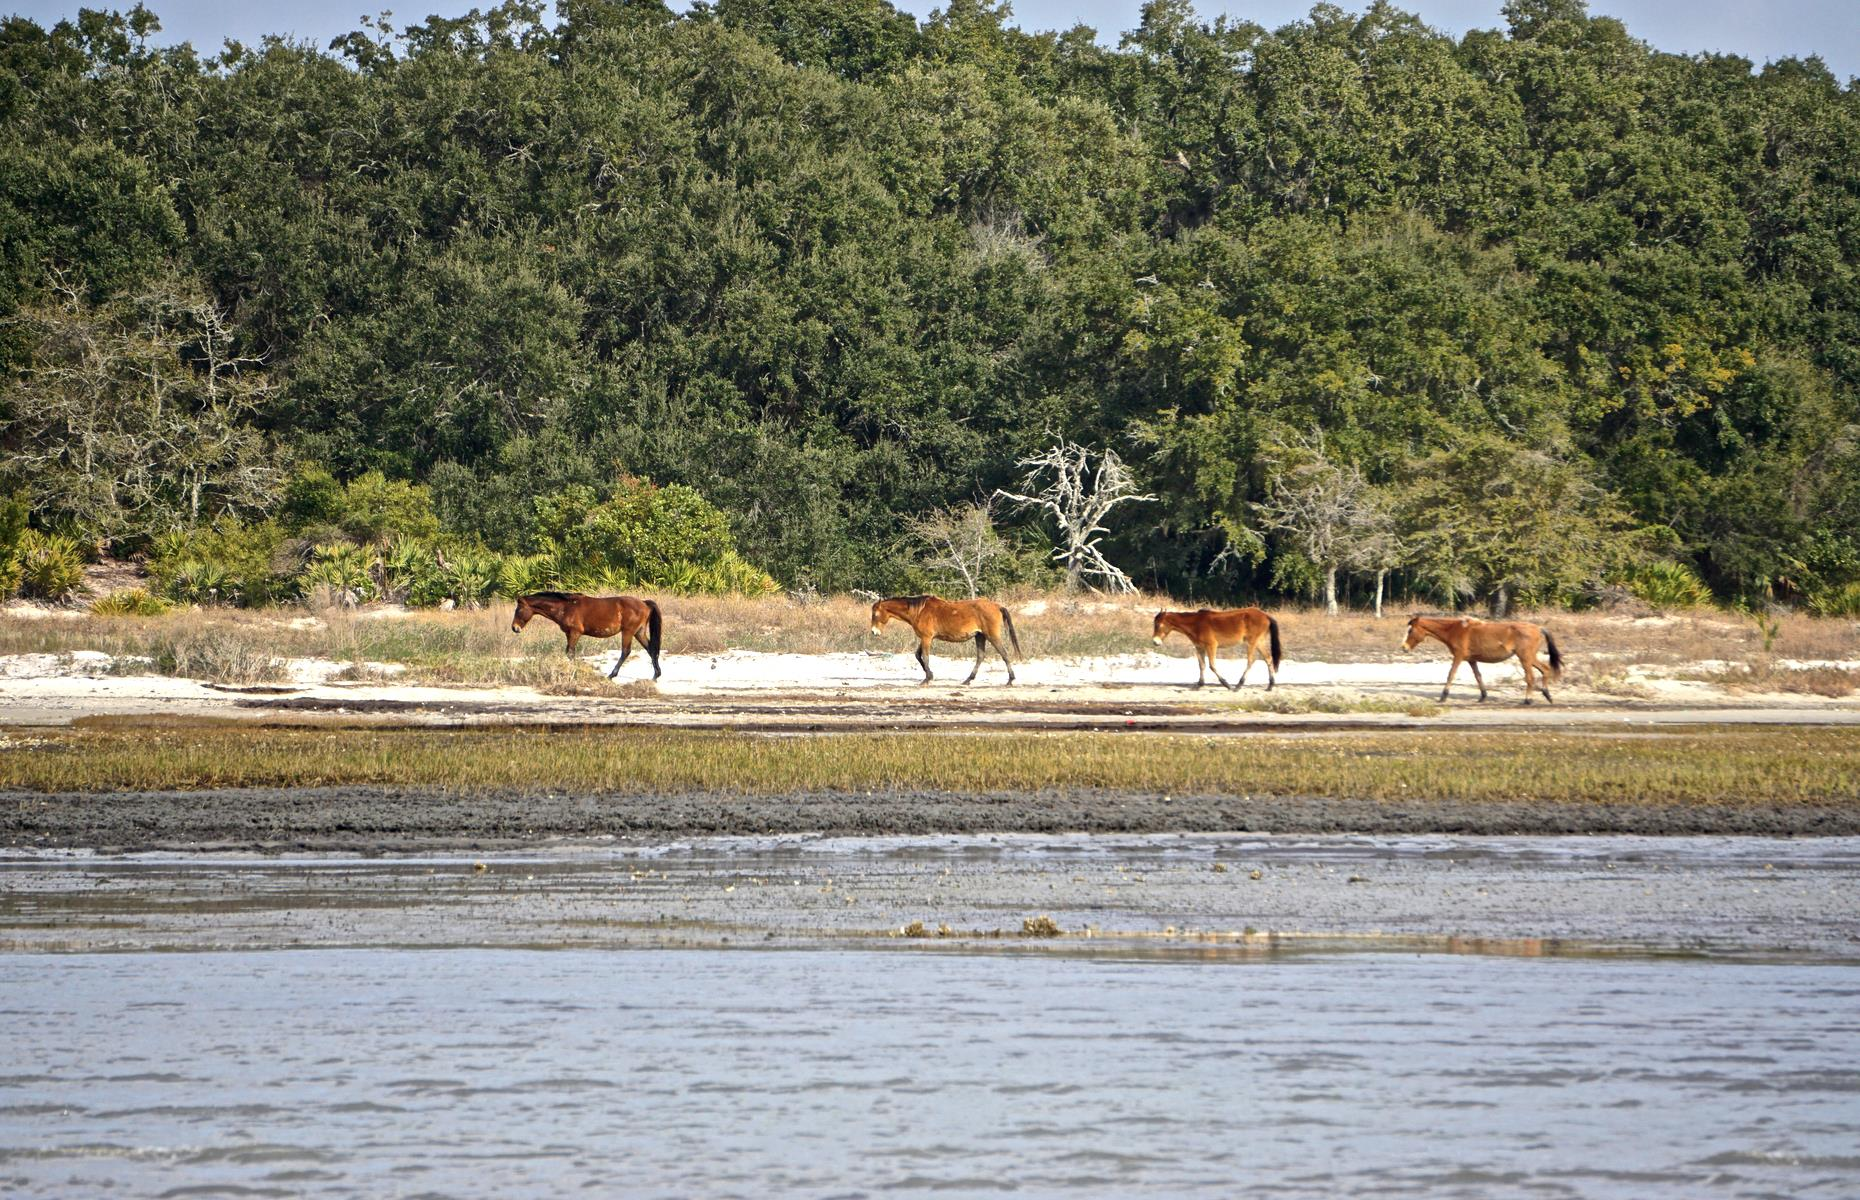 Slide 41 of 61: Wild horses roam Cumberland Island, the biggest of Georgia's barrier isles, at 18 miles (29km) long. It has windswept dunes and petrified trees, and a sprawling, unspoiled coast. Home to endangered loggerhead sea turtles – its tranquillity is such that you'll feel far further away than seven miles off Georgia's mainland. A ferry leaves the city of St Mary's from March through to November (booking is highly recommended) and the island offers hiking, biking and swimming opportunities, plus dark skies perfect for stargazing.